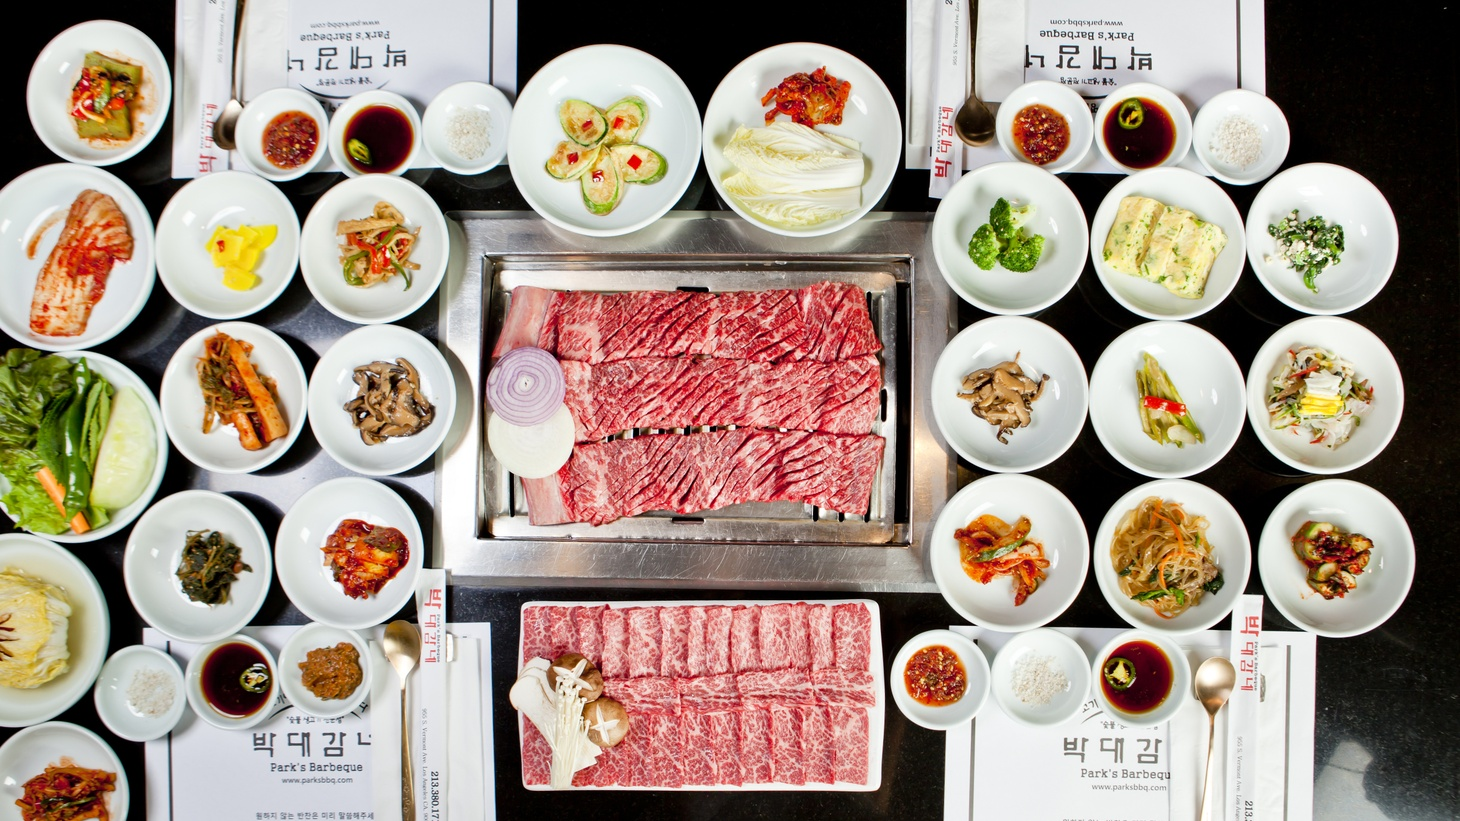 Jenee Kim shares the history of opening Park's BBQ in Koreatown and how the restaurant adapted a communal dining experience to a to-go concept during the pandemic.